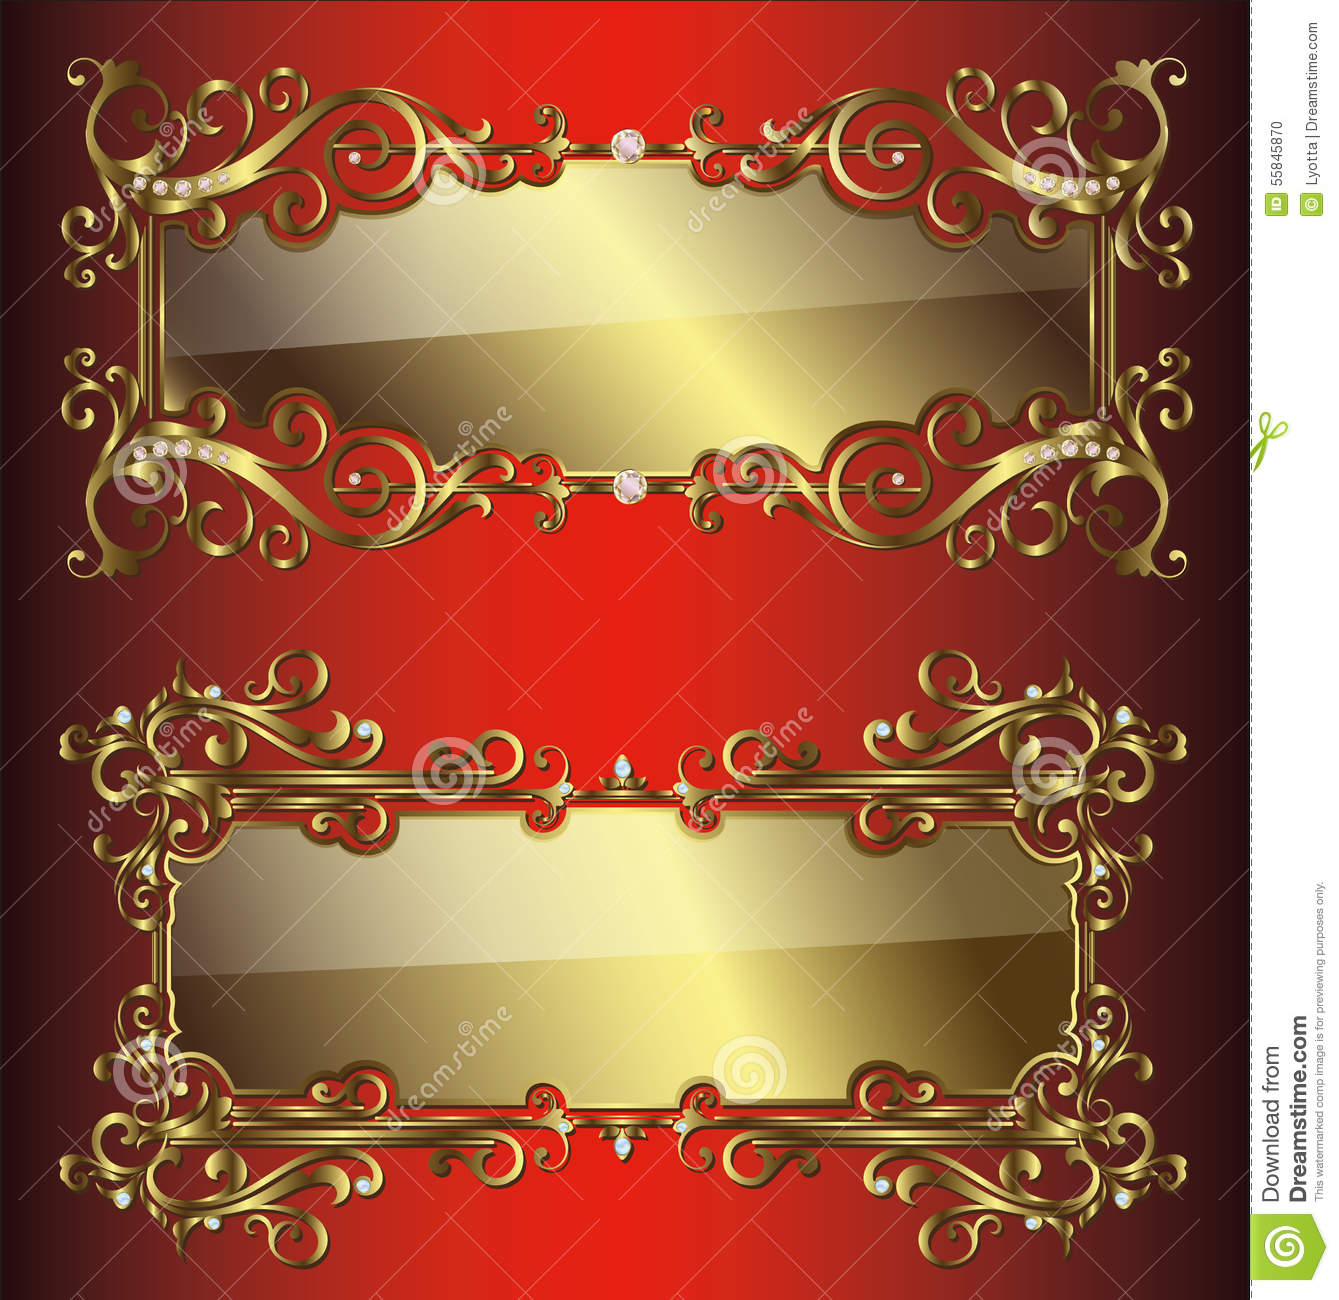 1c5375cd4c79 Vector Golden Frames And Borders Stock Vector - Illustration of ...